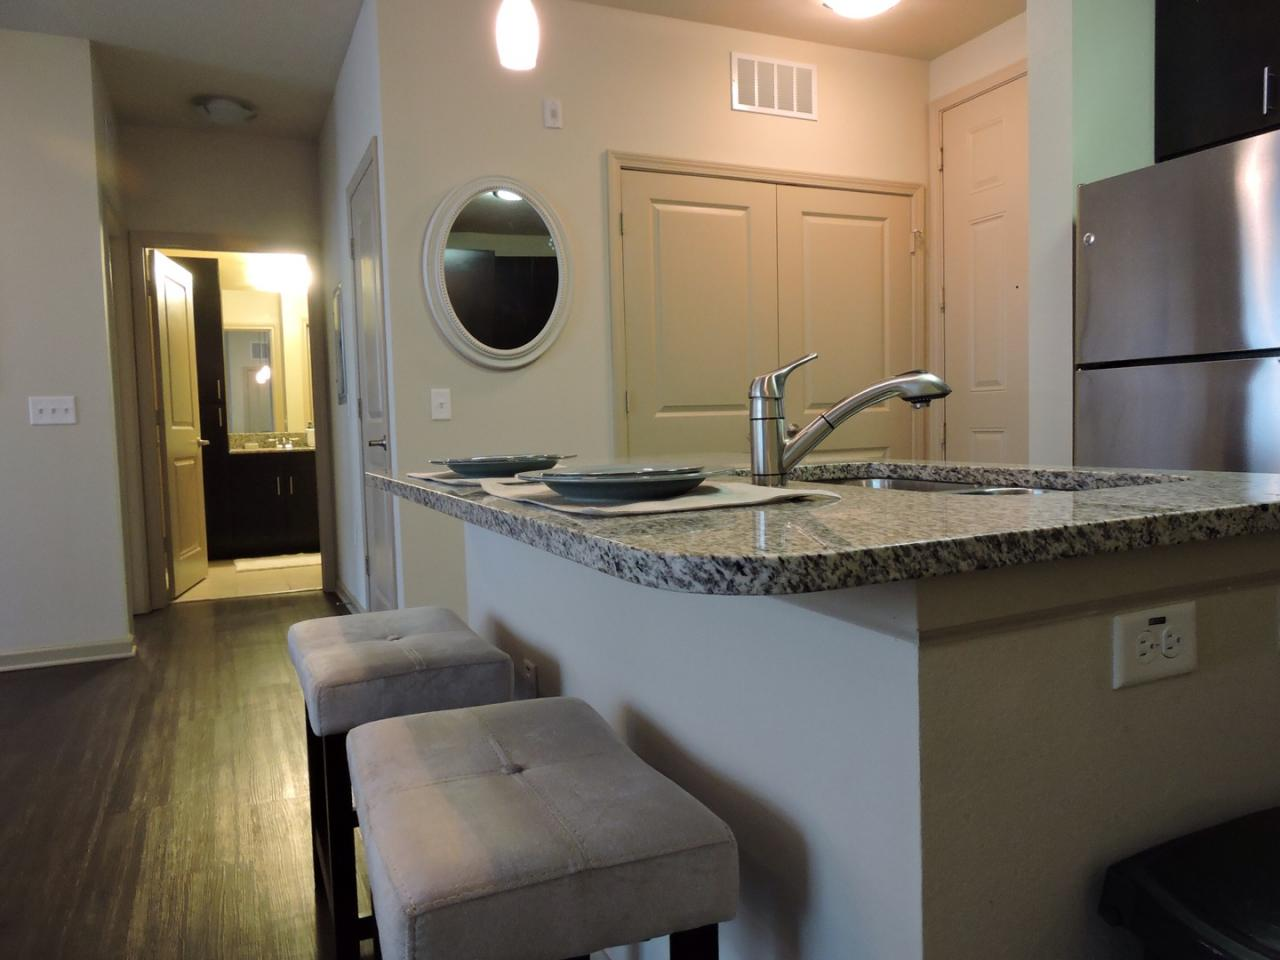 tampa bay suites custom housing solutions photo gallery